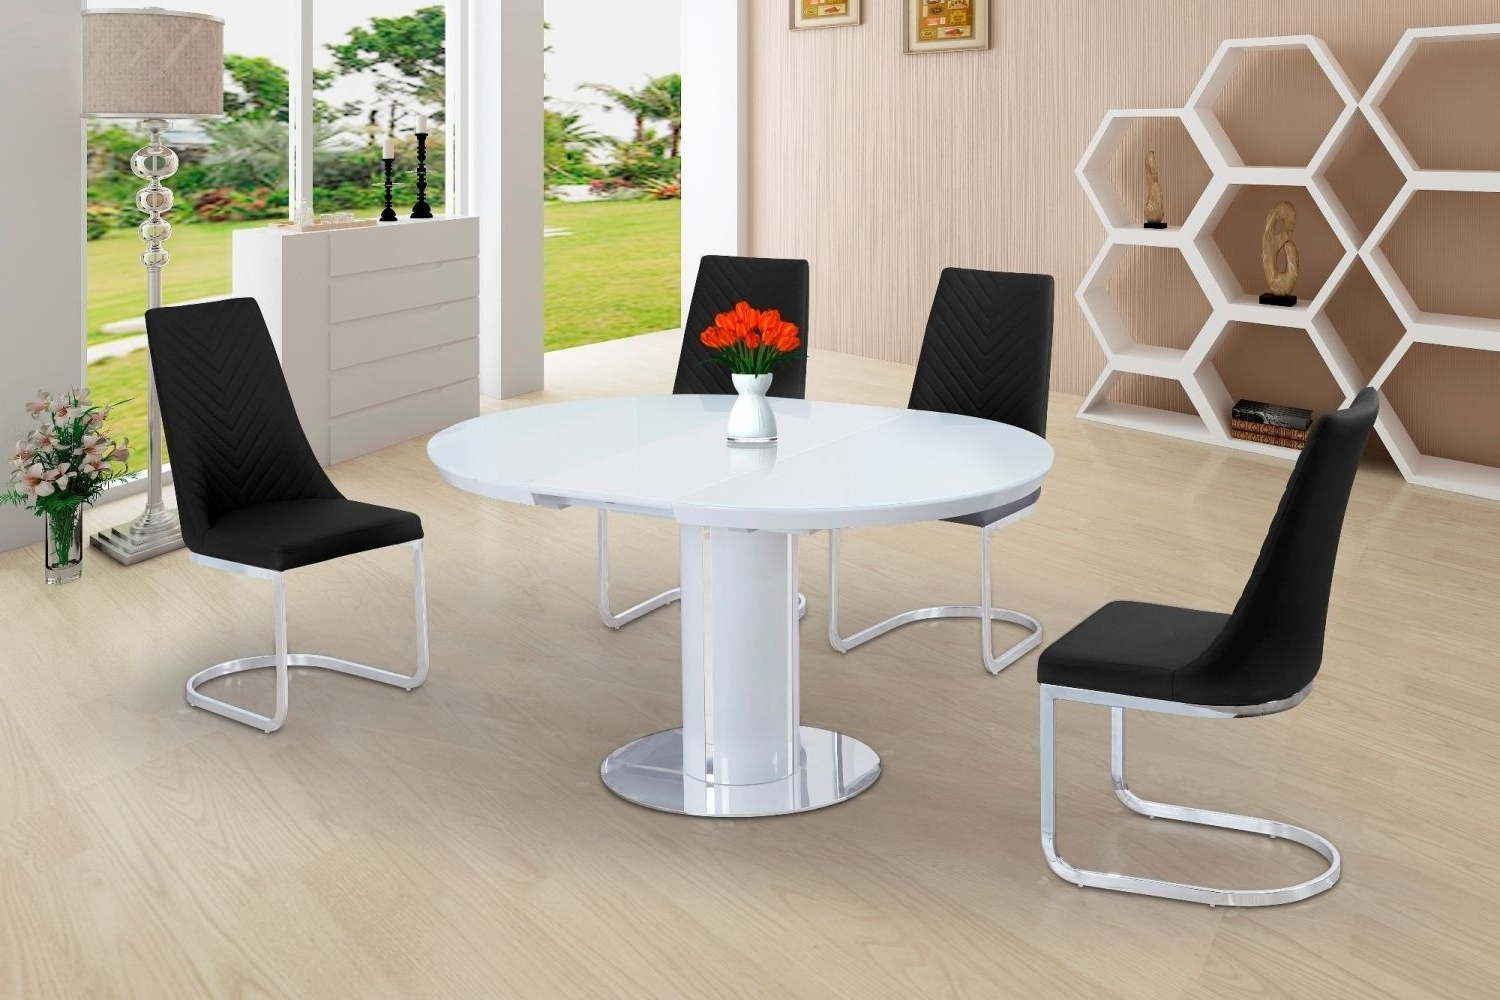 Well Known White Gloss Extendable Dining Tables Throughout Eclipse Round Oval Gloss & Glass Extending 110 To 145 Cm Dining (View 12 of 25)